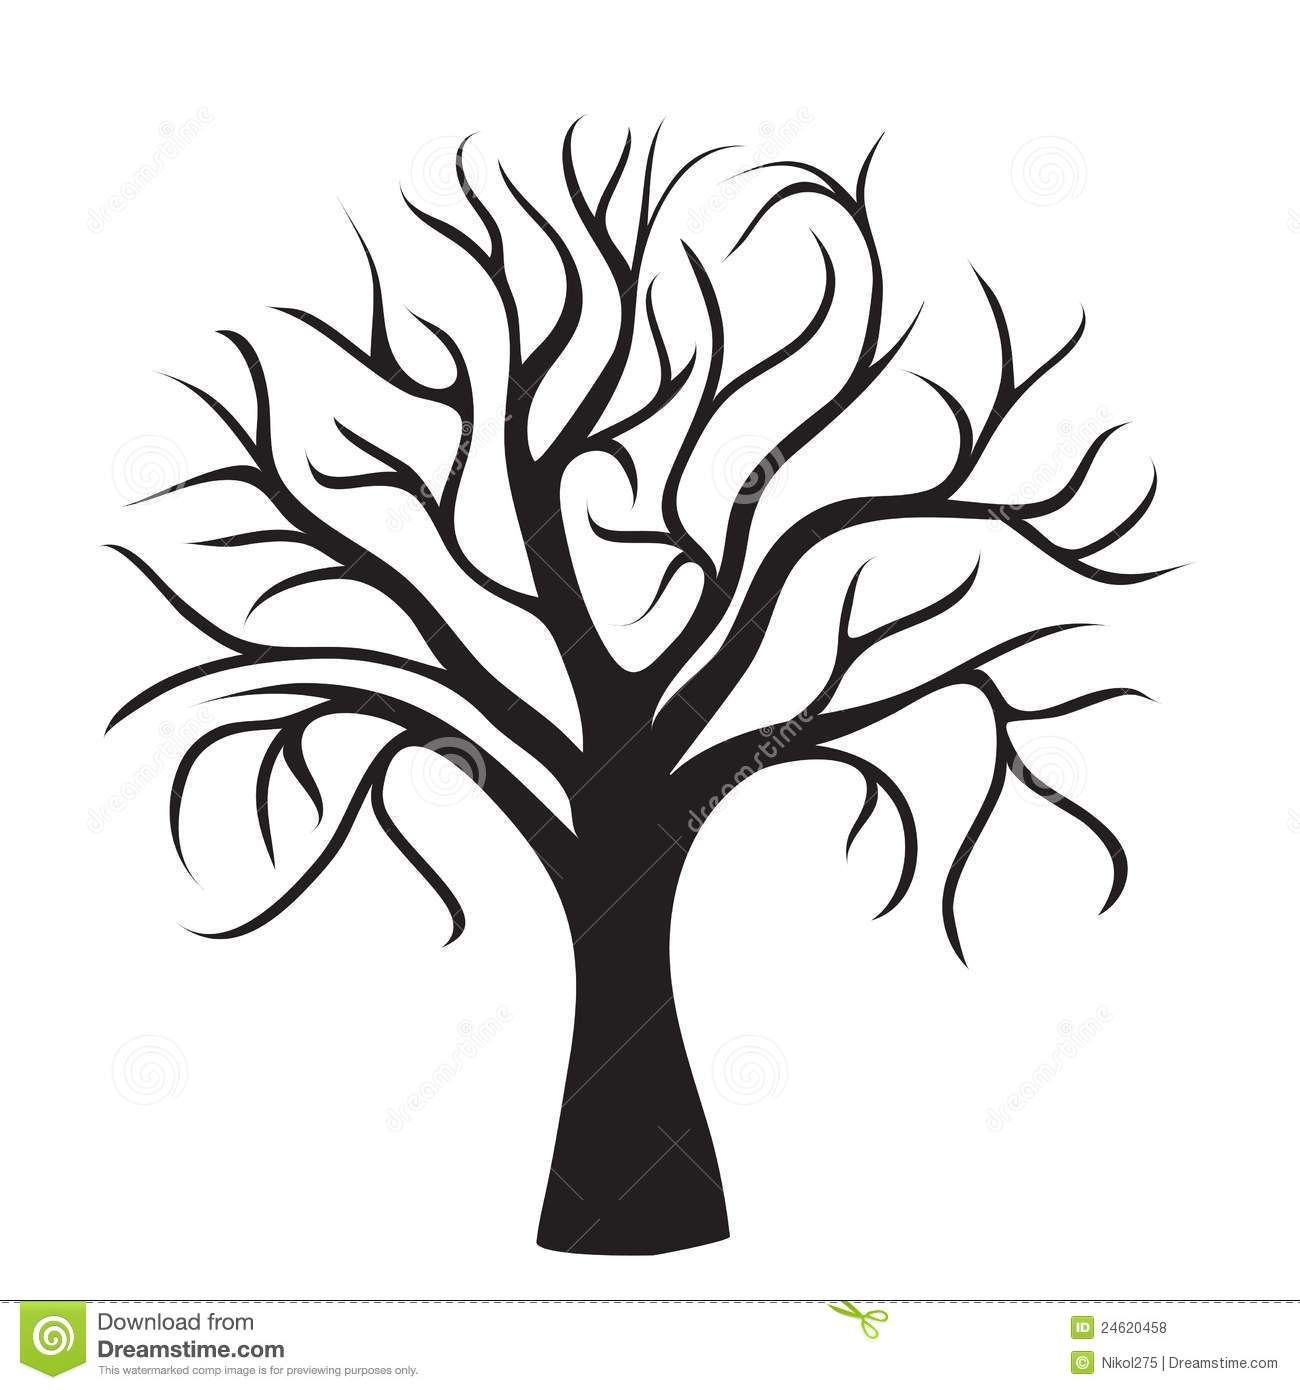 Black Tree without Leaves  trees  Pinterest